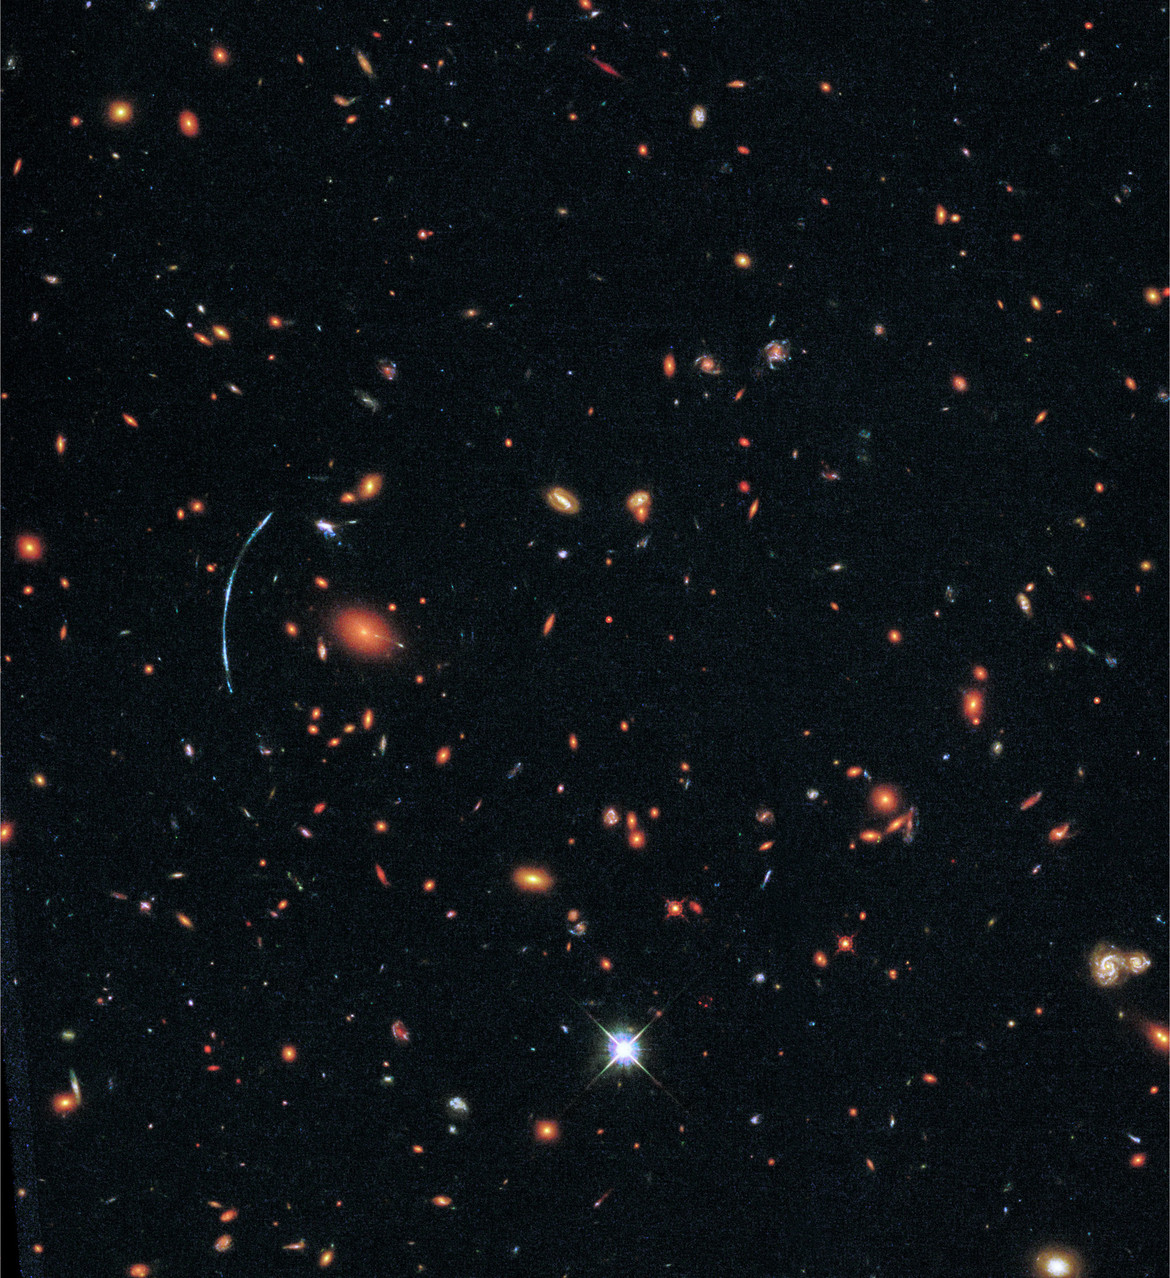 The galaxy cluster SDSS J1110+6459 can be seen here in the as hundreds of galaxies held together by their mutual gravity. The blue arc of the lensed galaxy SGAS J111020.0+645950.8 can be seen on the left.